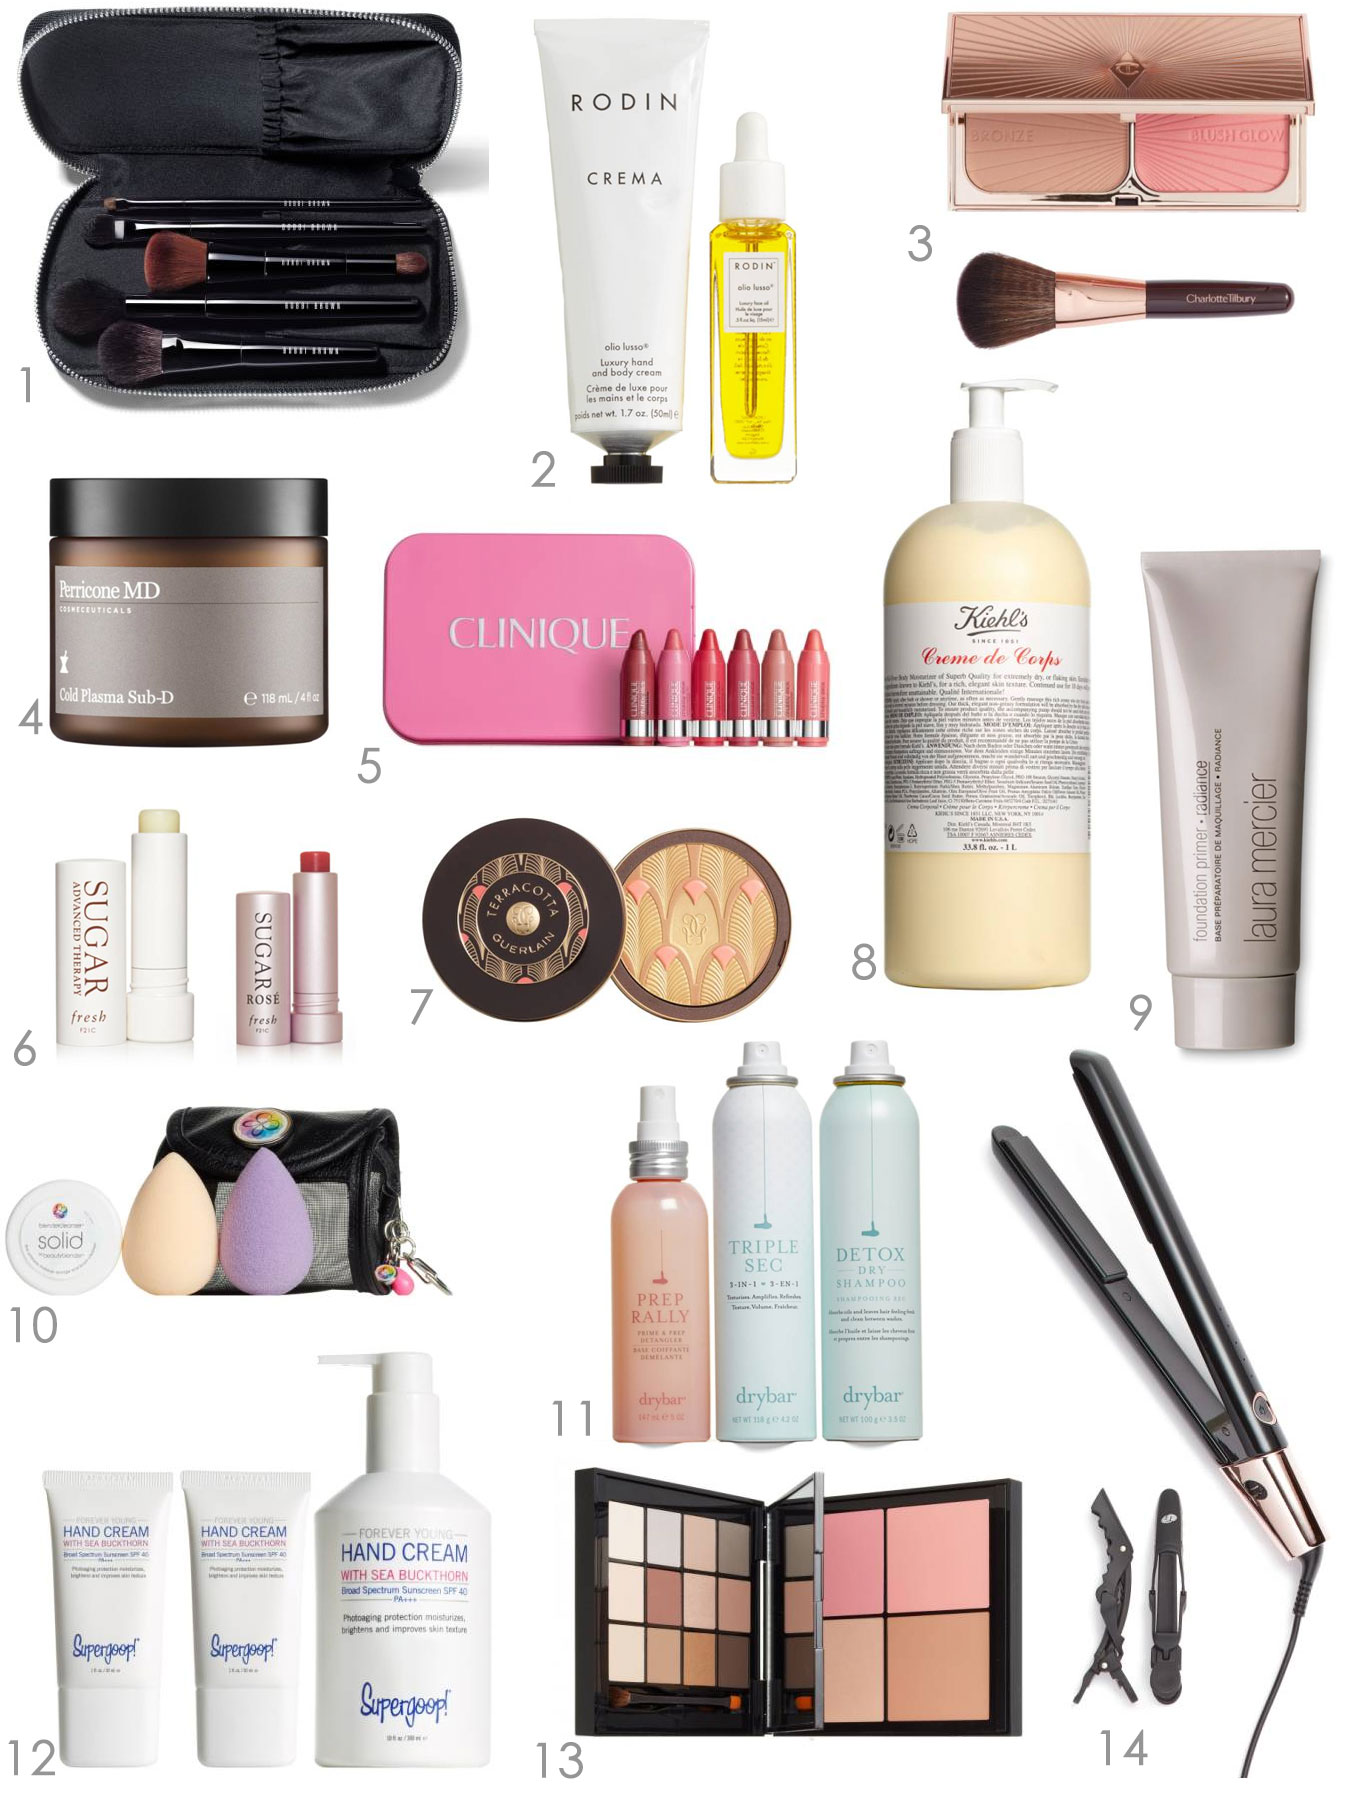 Ridgely Brode's picks her favorite beauty items from the Nordstrom Anniversary Sale Early Access and shares them on her blog, Ridgely's Radar.